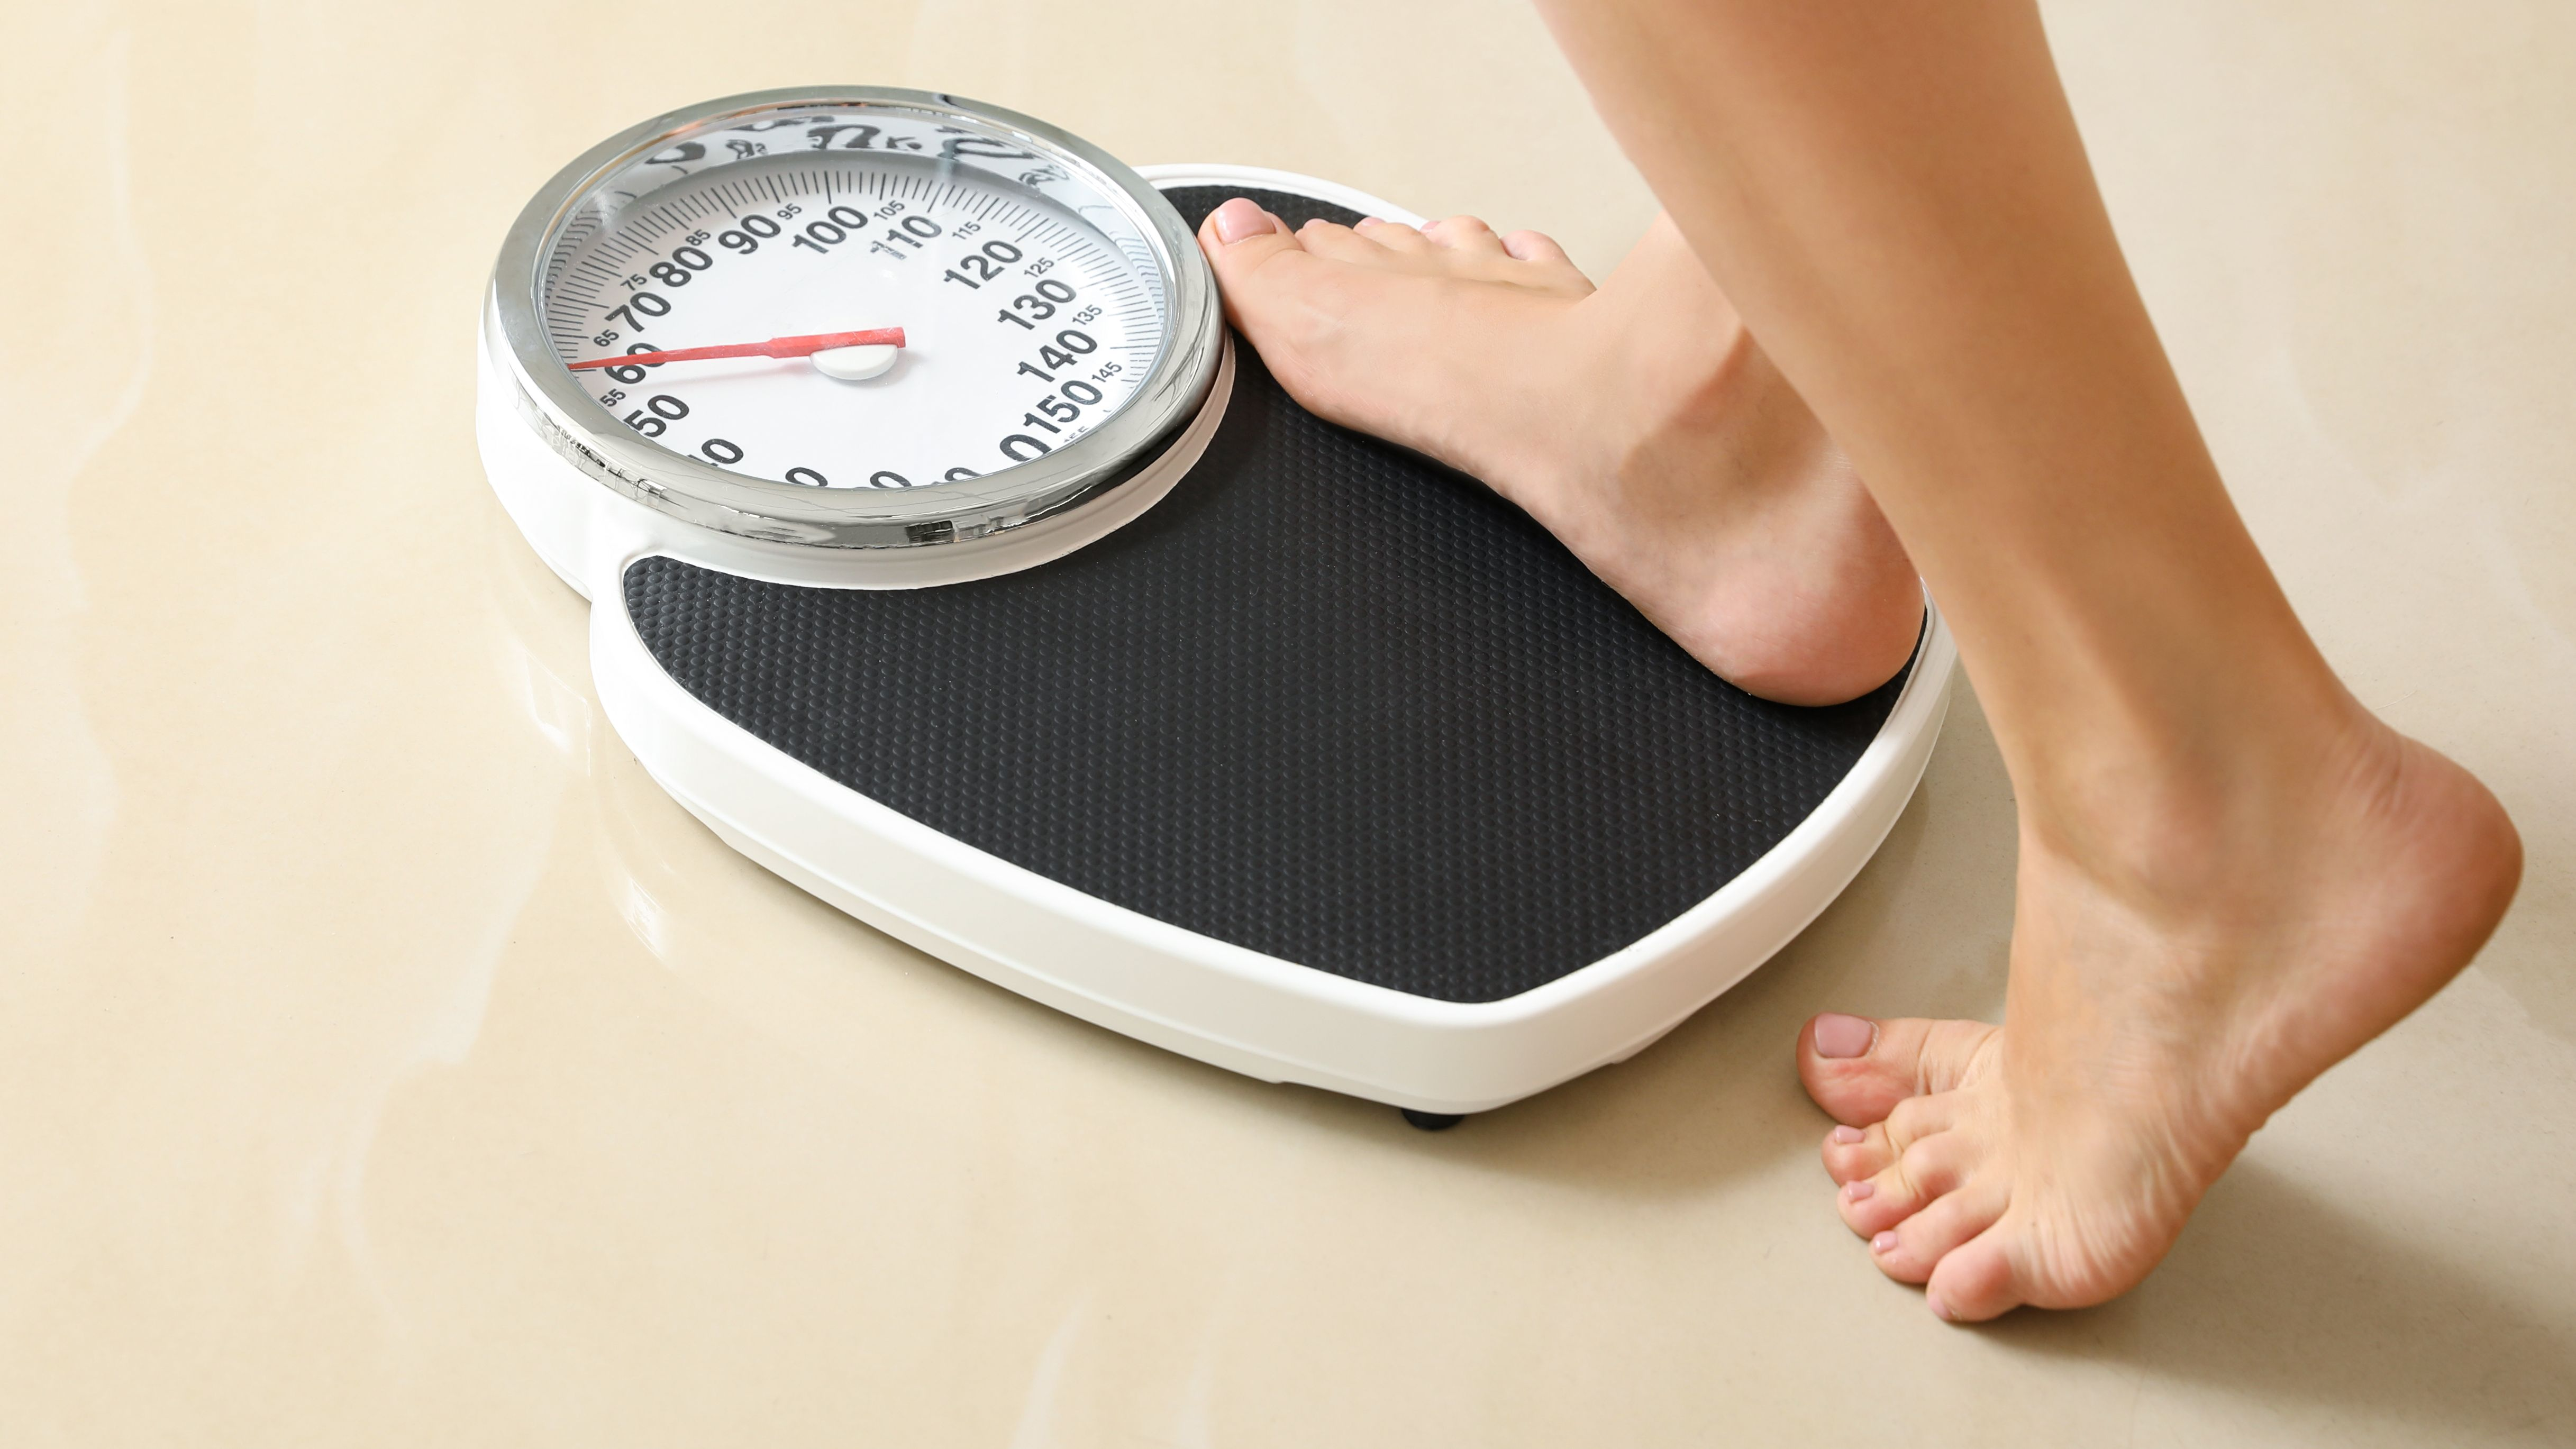 Bathroom scale buying guide